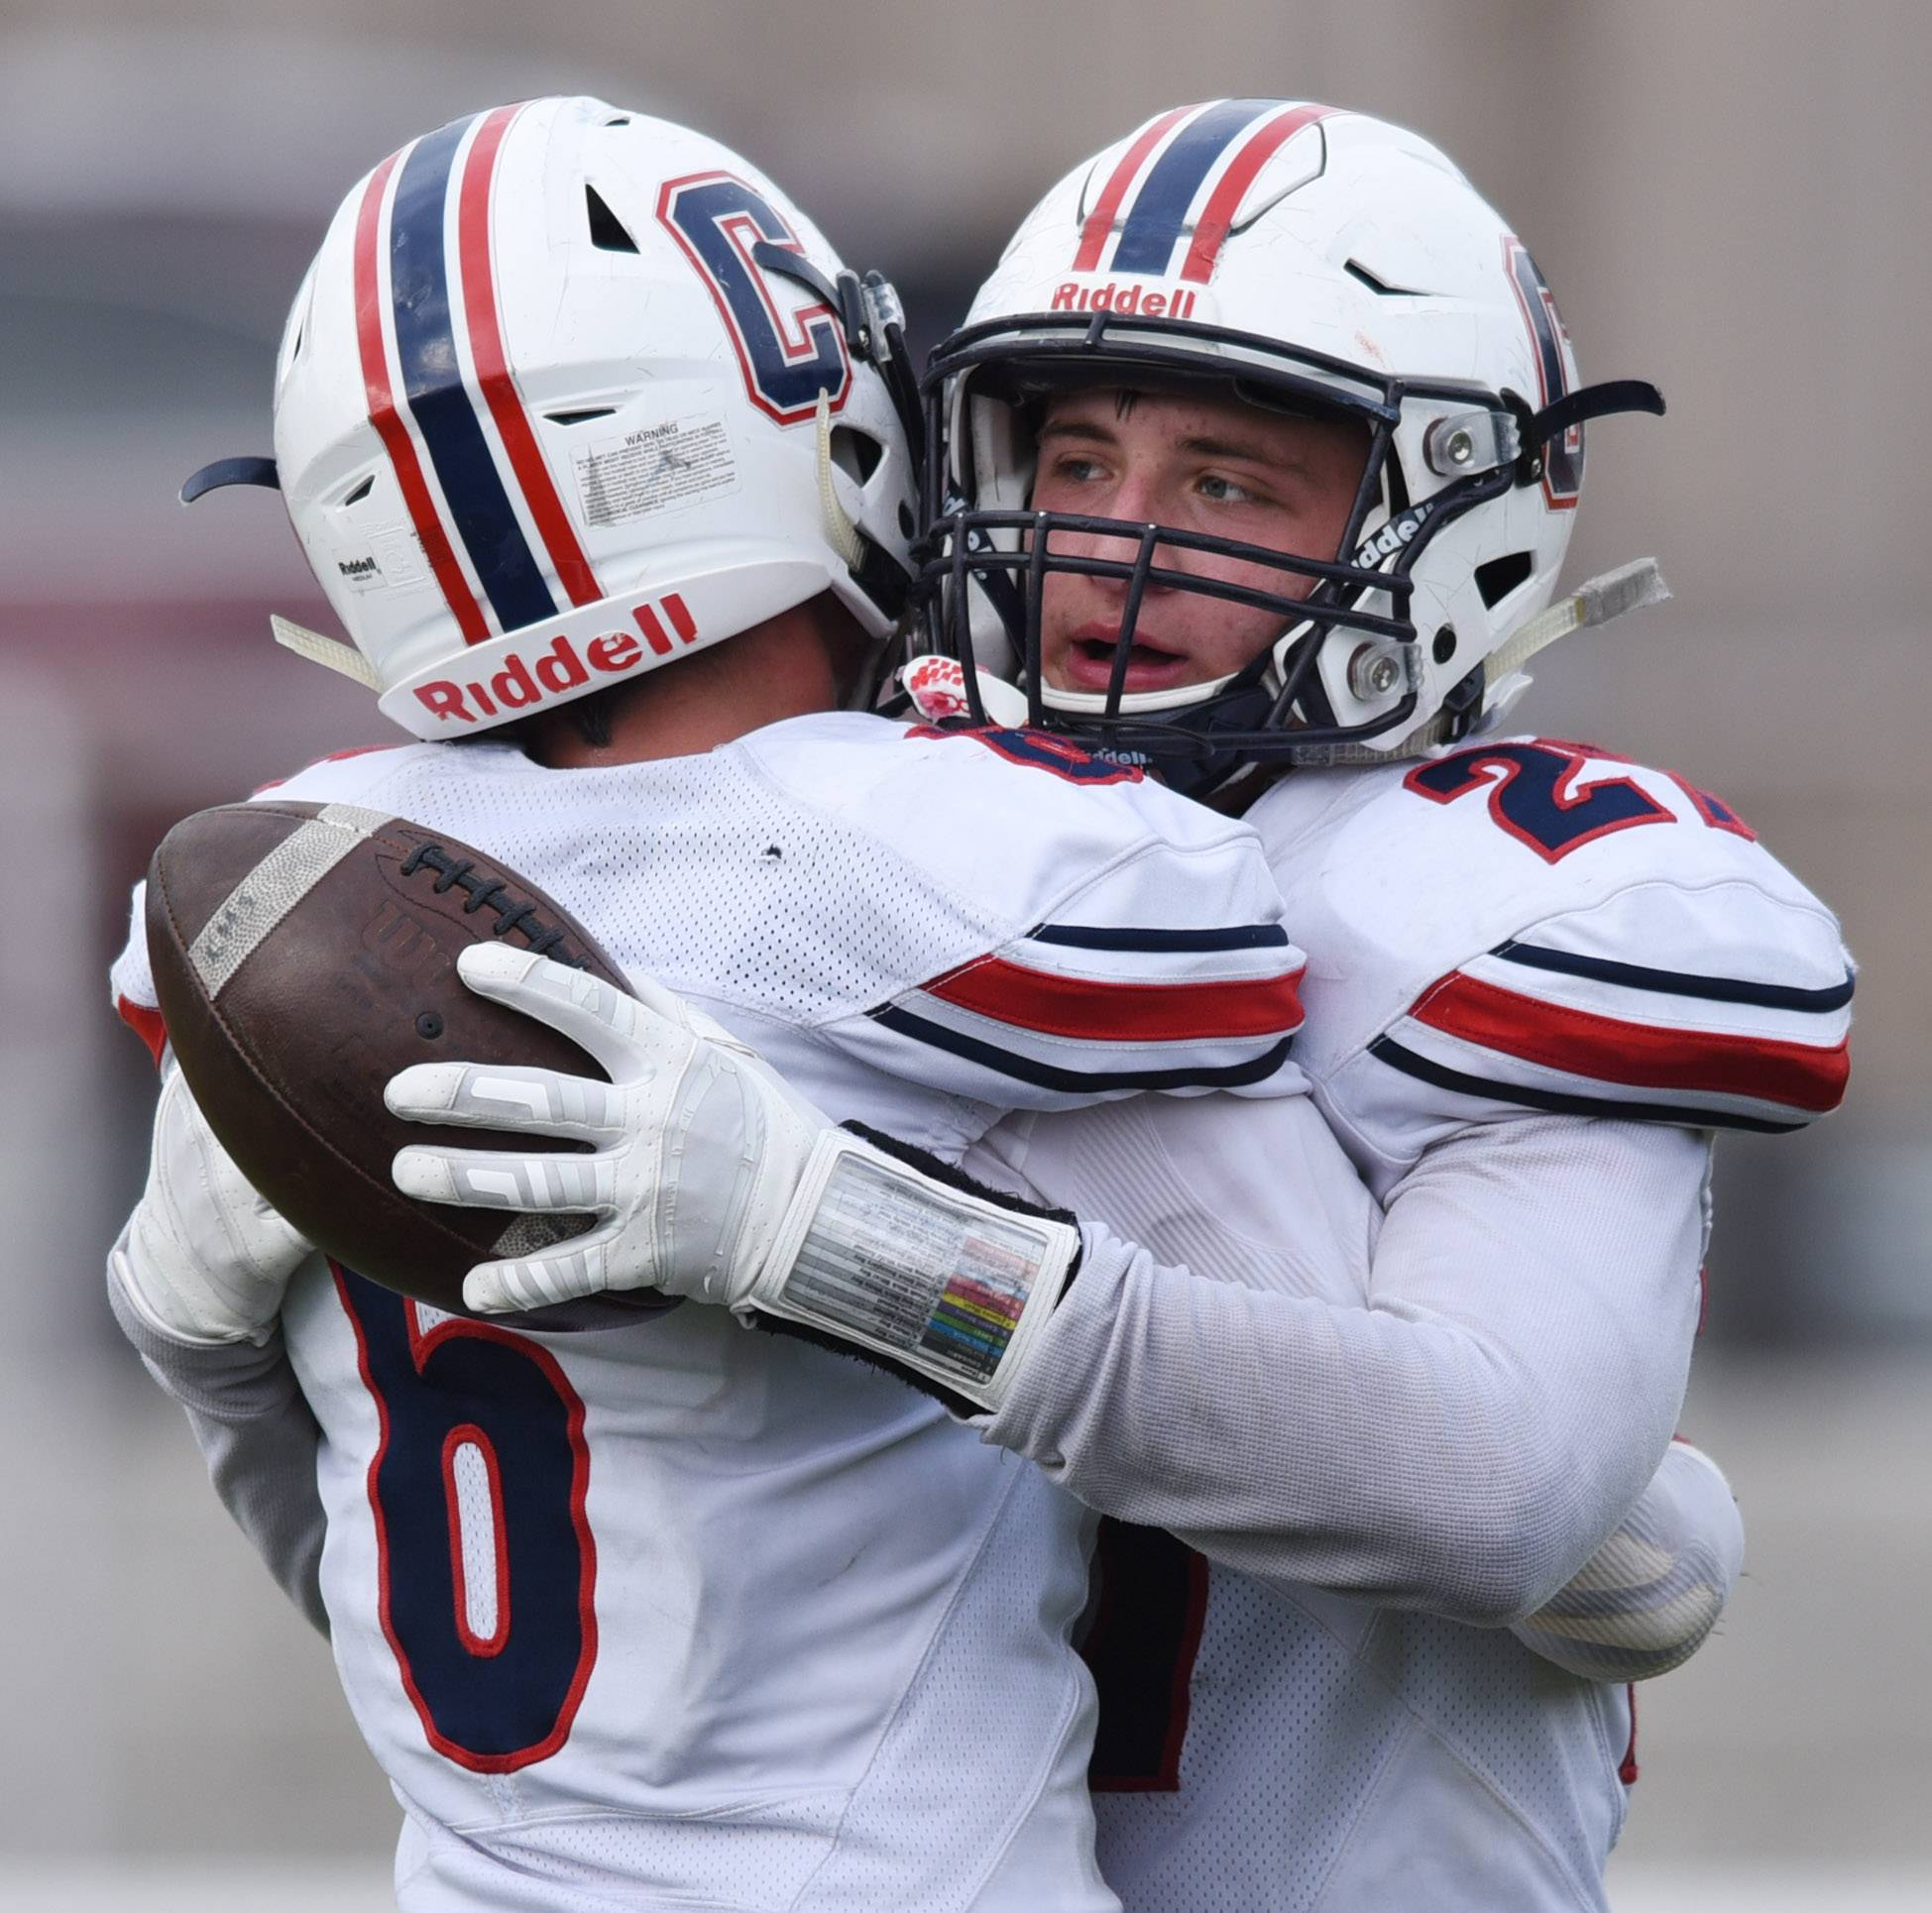 Conant's Anthony Wachal, right, hugs teammate Mason Reiger after scoring a touchdown to make the score 28-14 in favor of Hindale Central with 90 seconds left during Saturday's game in Hinsdale.